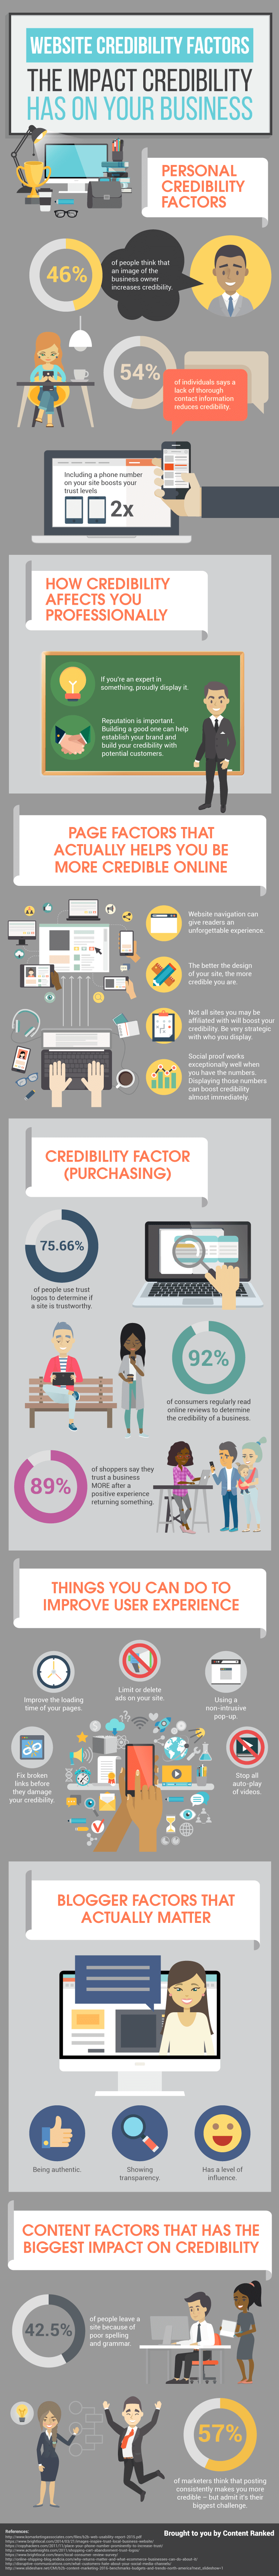 Website Credibility Factors: The Impact Credibility Has on Your Business